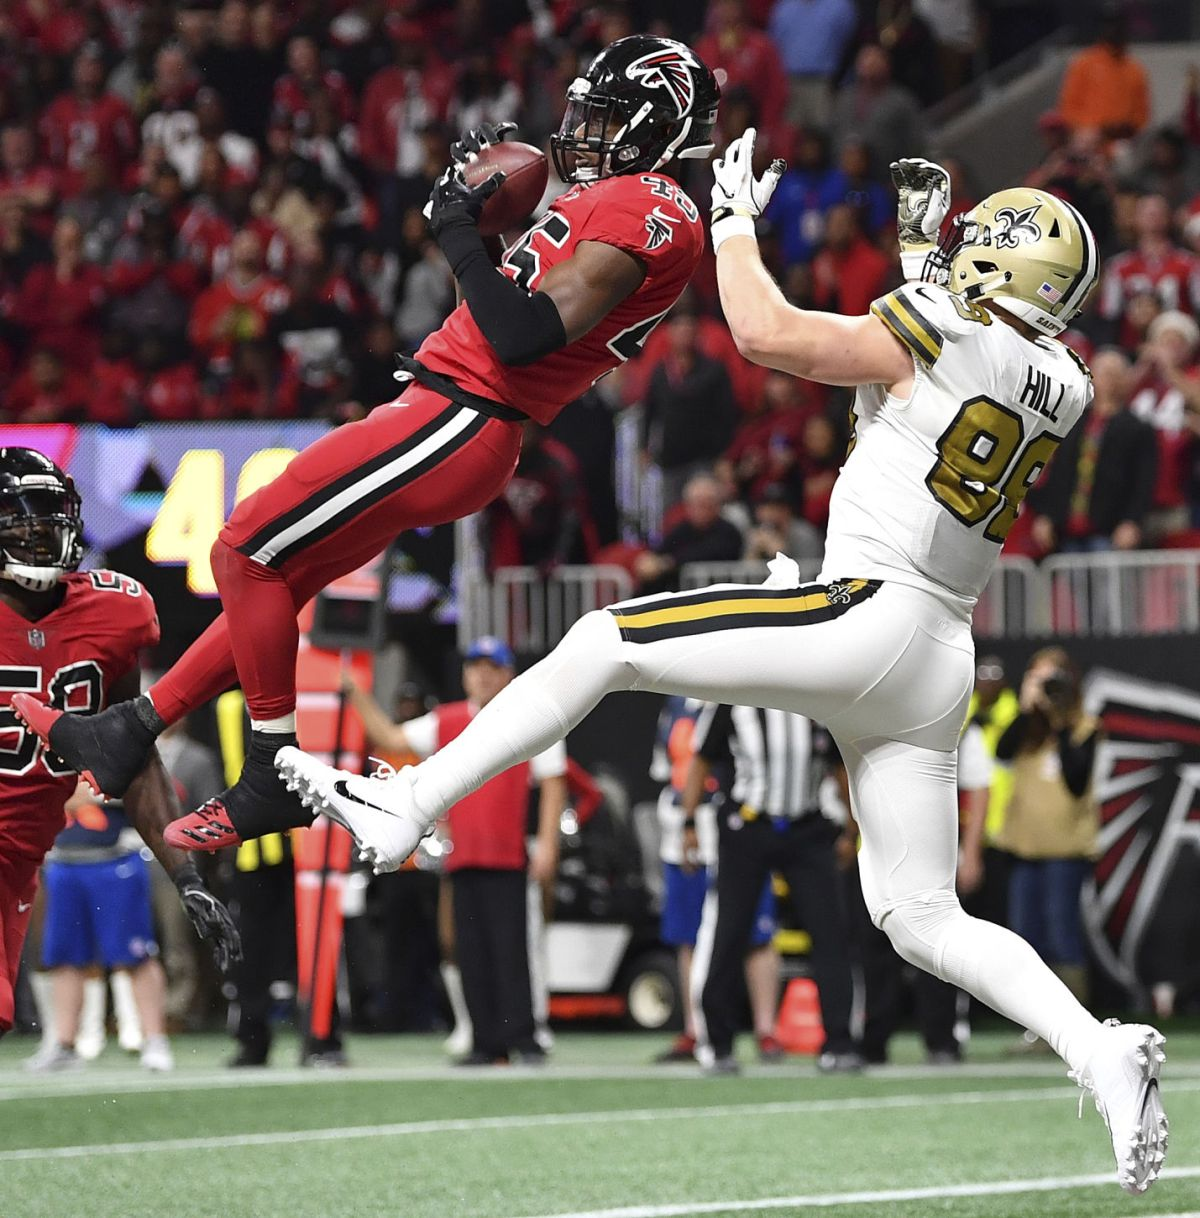 Saints vs. Falcons recap: See what New Orleans players, coaches say about heartbreaking 20-17 ...